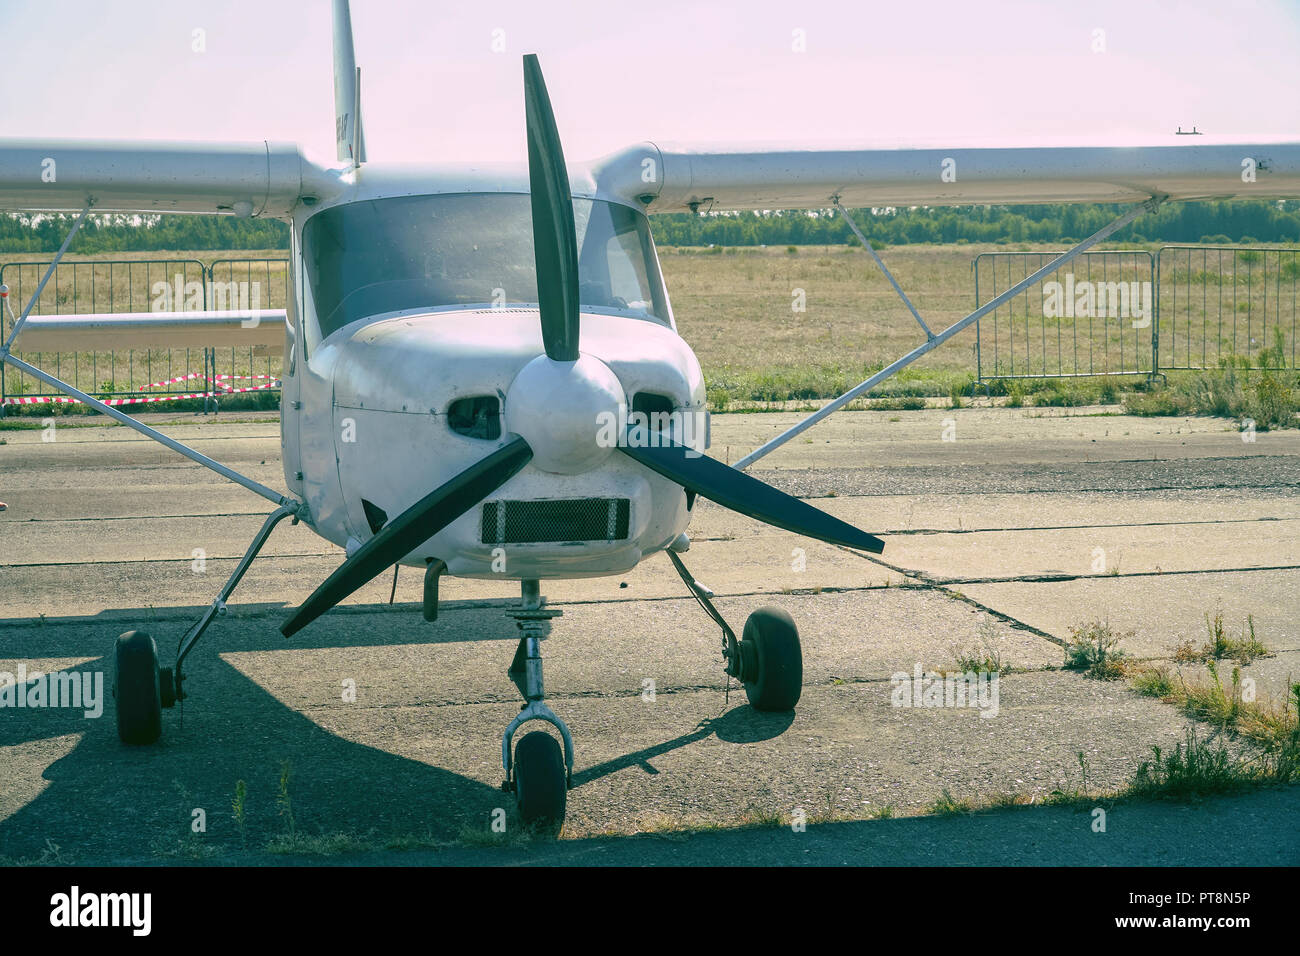 Light single-engine aircraft at the airport - Stock Image